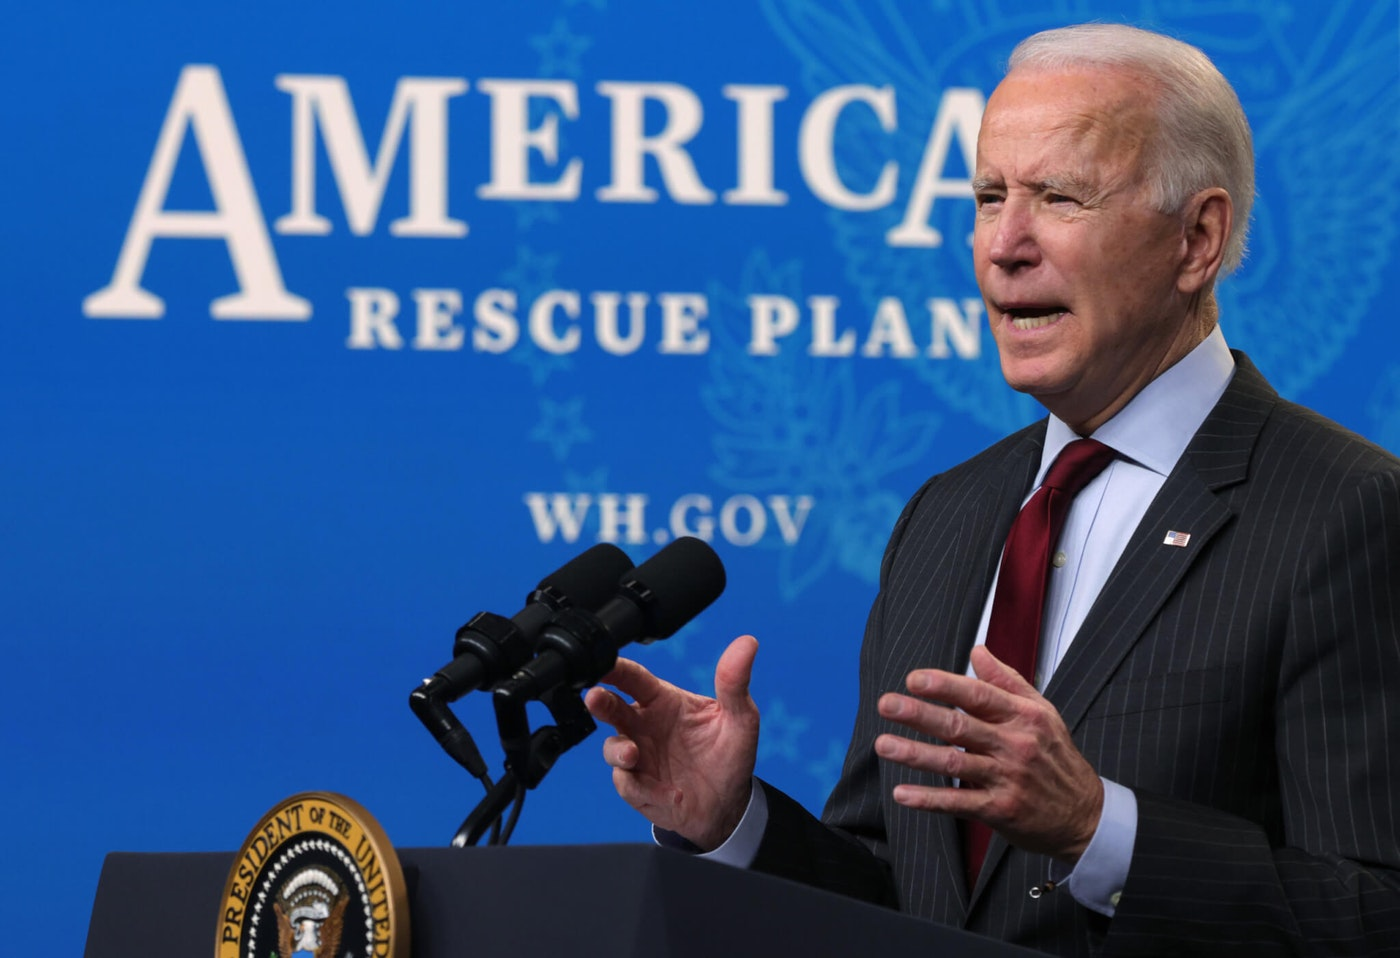 WASHINGTON, DC - FEBRUARY 22:  U.S. President Joe Biden speaks during an announcement related to small businesses at the South Court Auditorium of the Eisenhower Executive Office Building February 22, 2021 in Washington, DC. President Biden announced changes to the Paycheck Protection Program aimed at helping small and minority-owned business to qualify for federal loans due to the economic impact that has been caused by the COVID-19 pandemic. (Photo by Alex Wong/Getty Images)